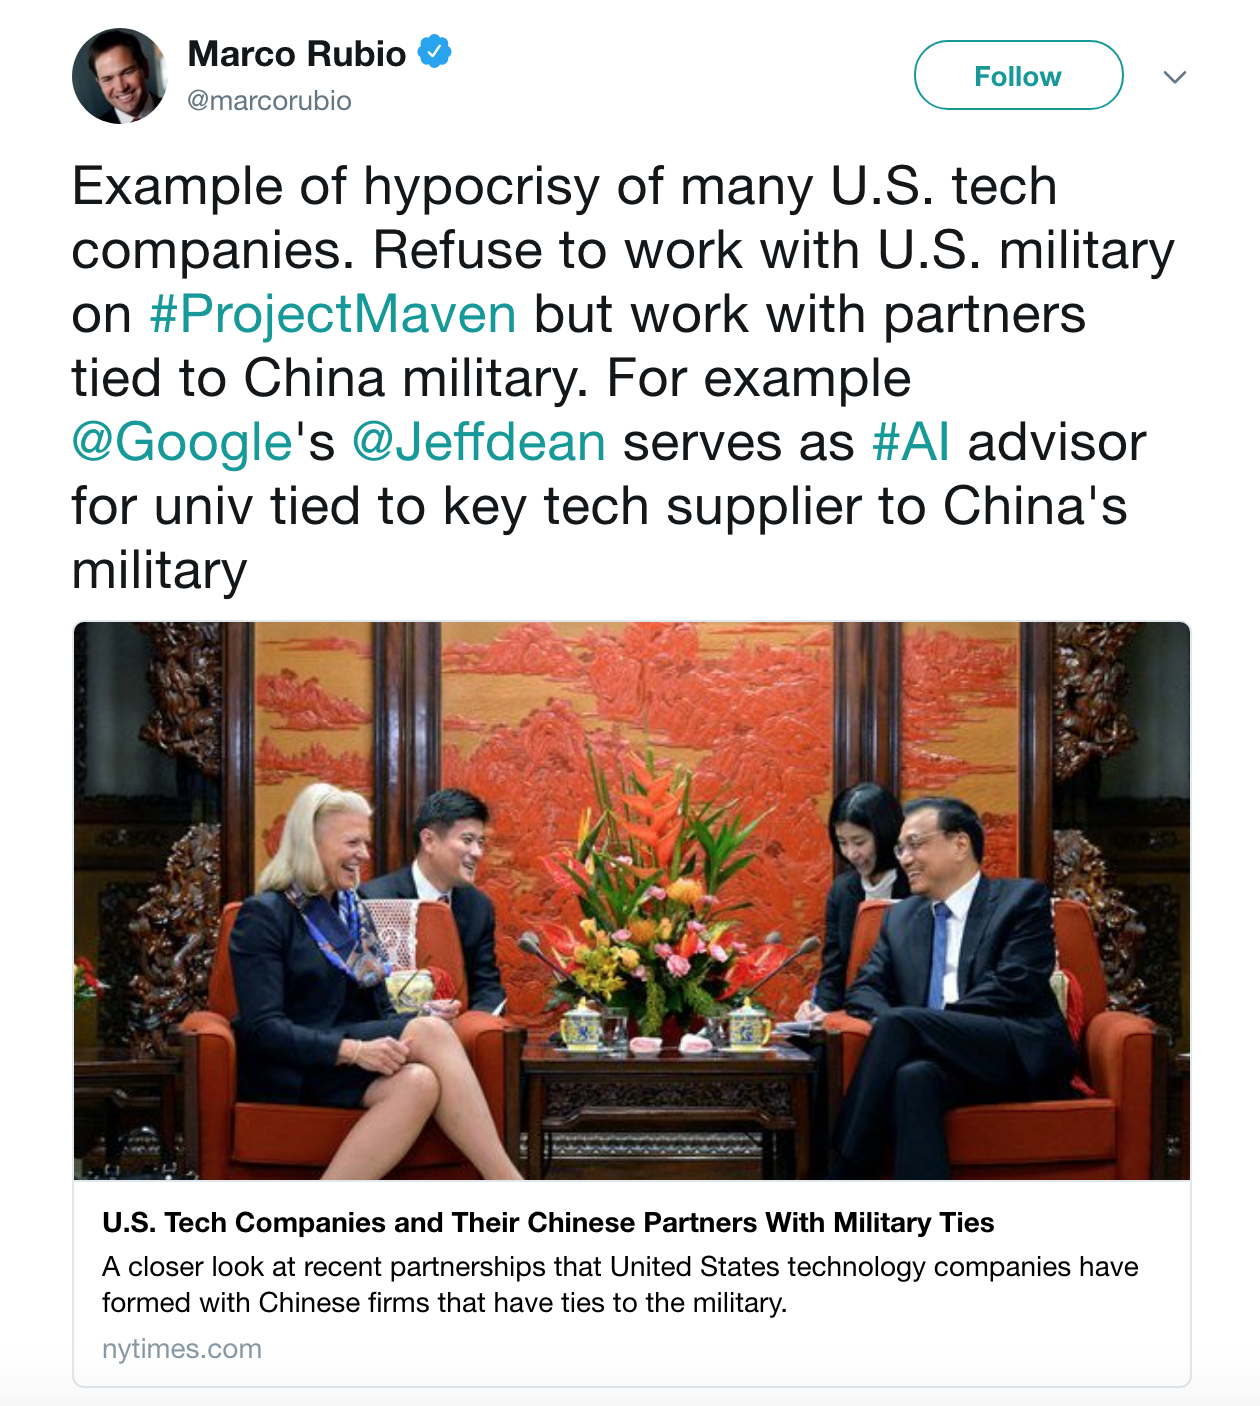 Screenshot from Sen. Marco Rubio's tweet showing his anger at U.S. tech's relationship with China's university